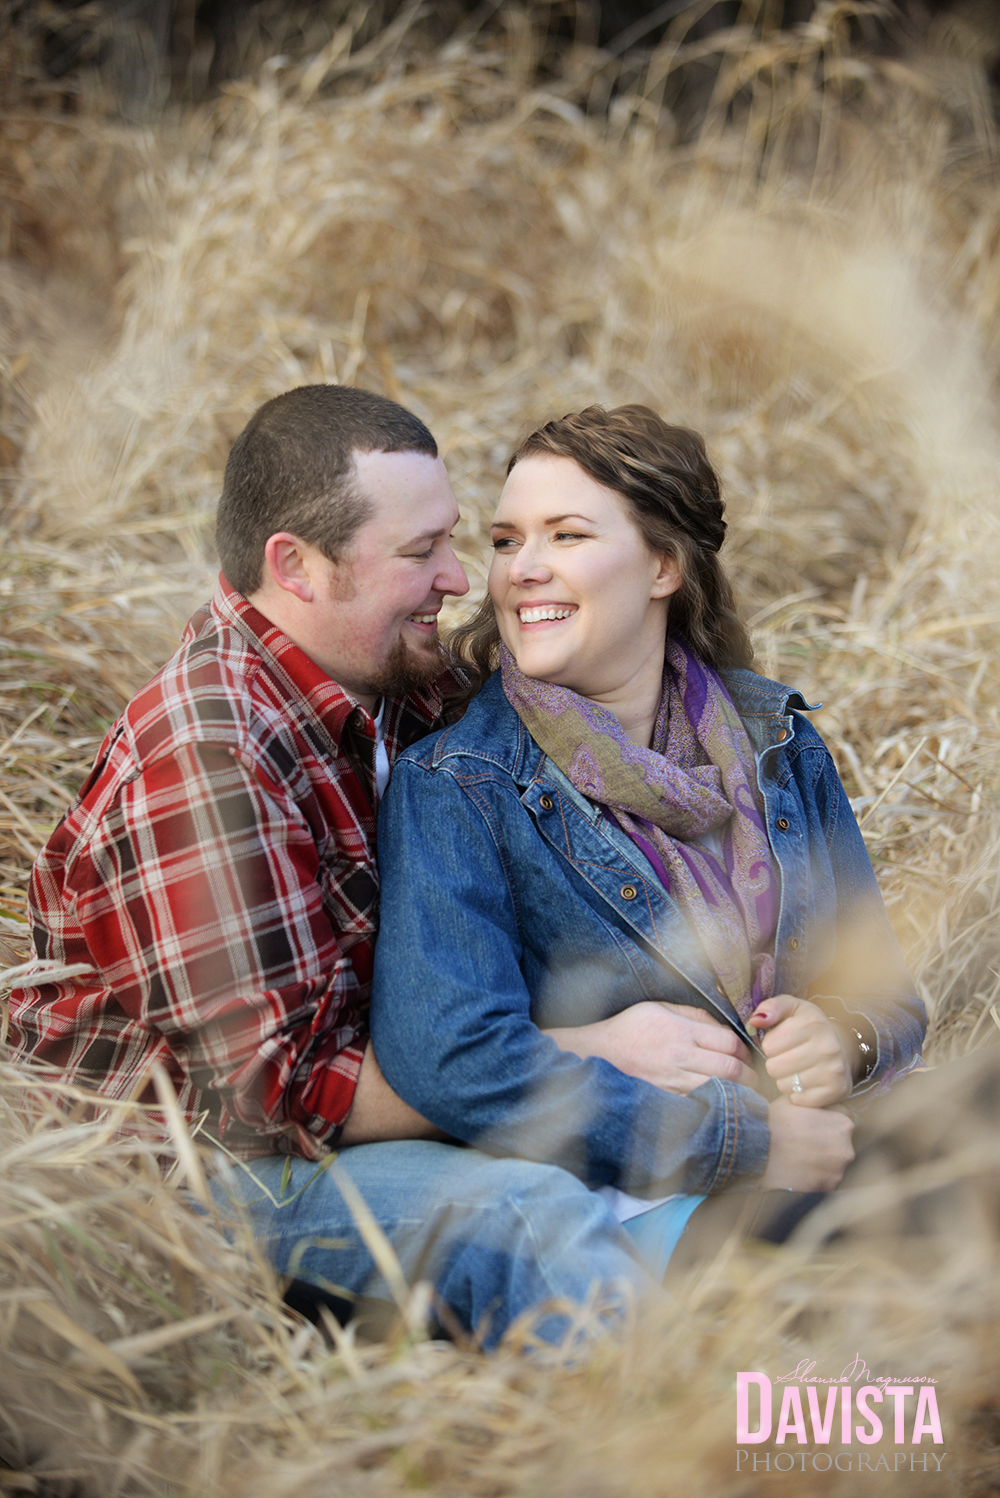 heart-engaged-i-do-photography-outdoor-session